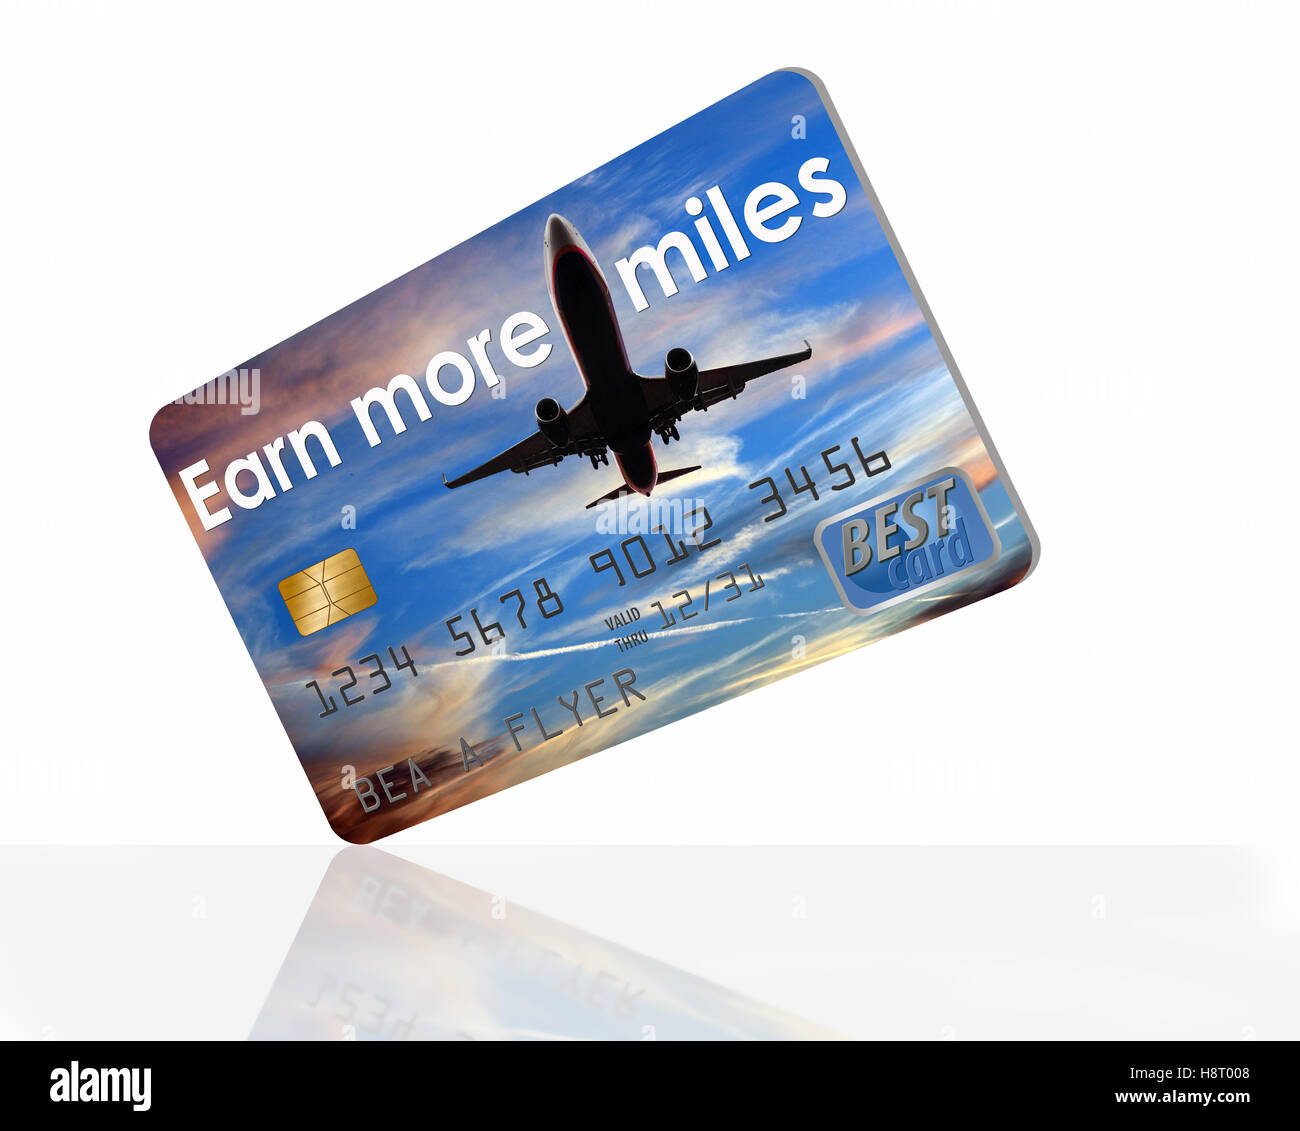 Earn more miles credit card with an airplane in the sky design. Debit card or credit card - Stock Image